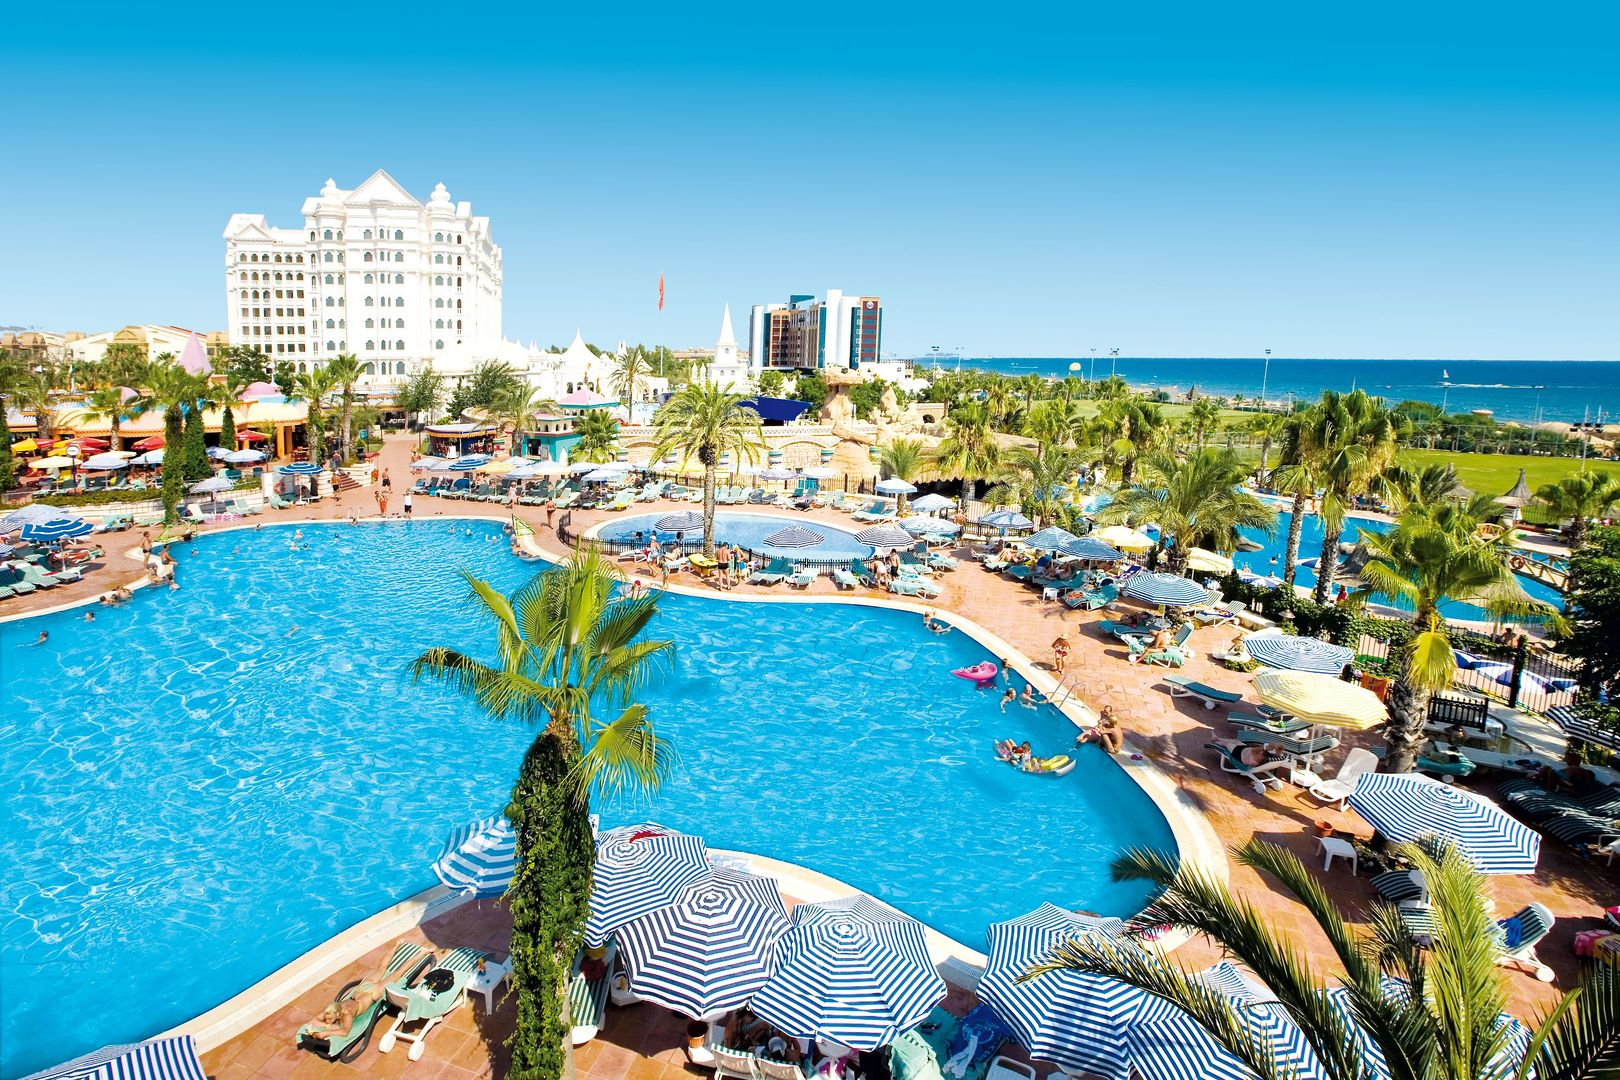 Kamelya K Club -